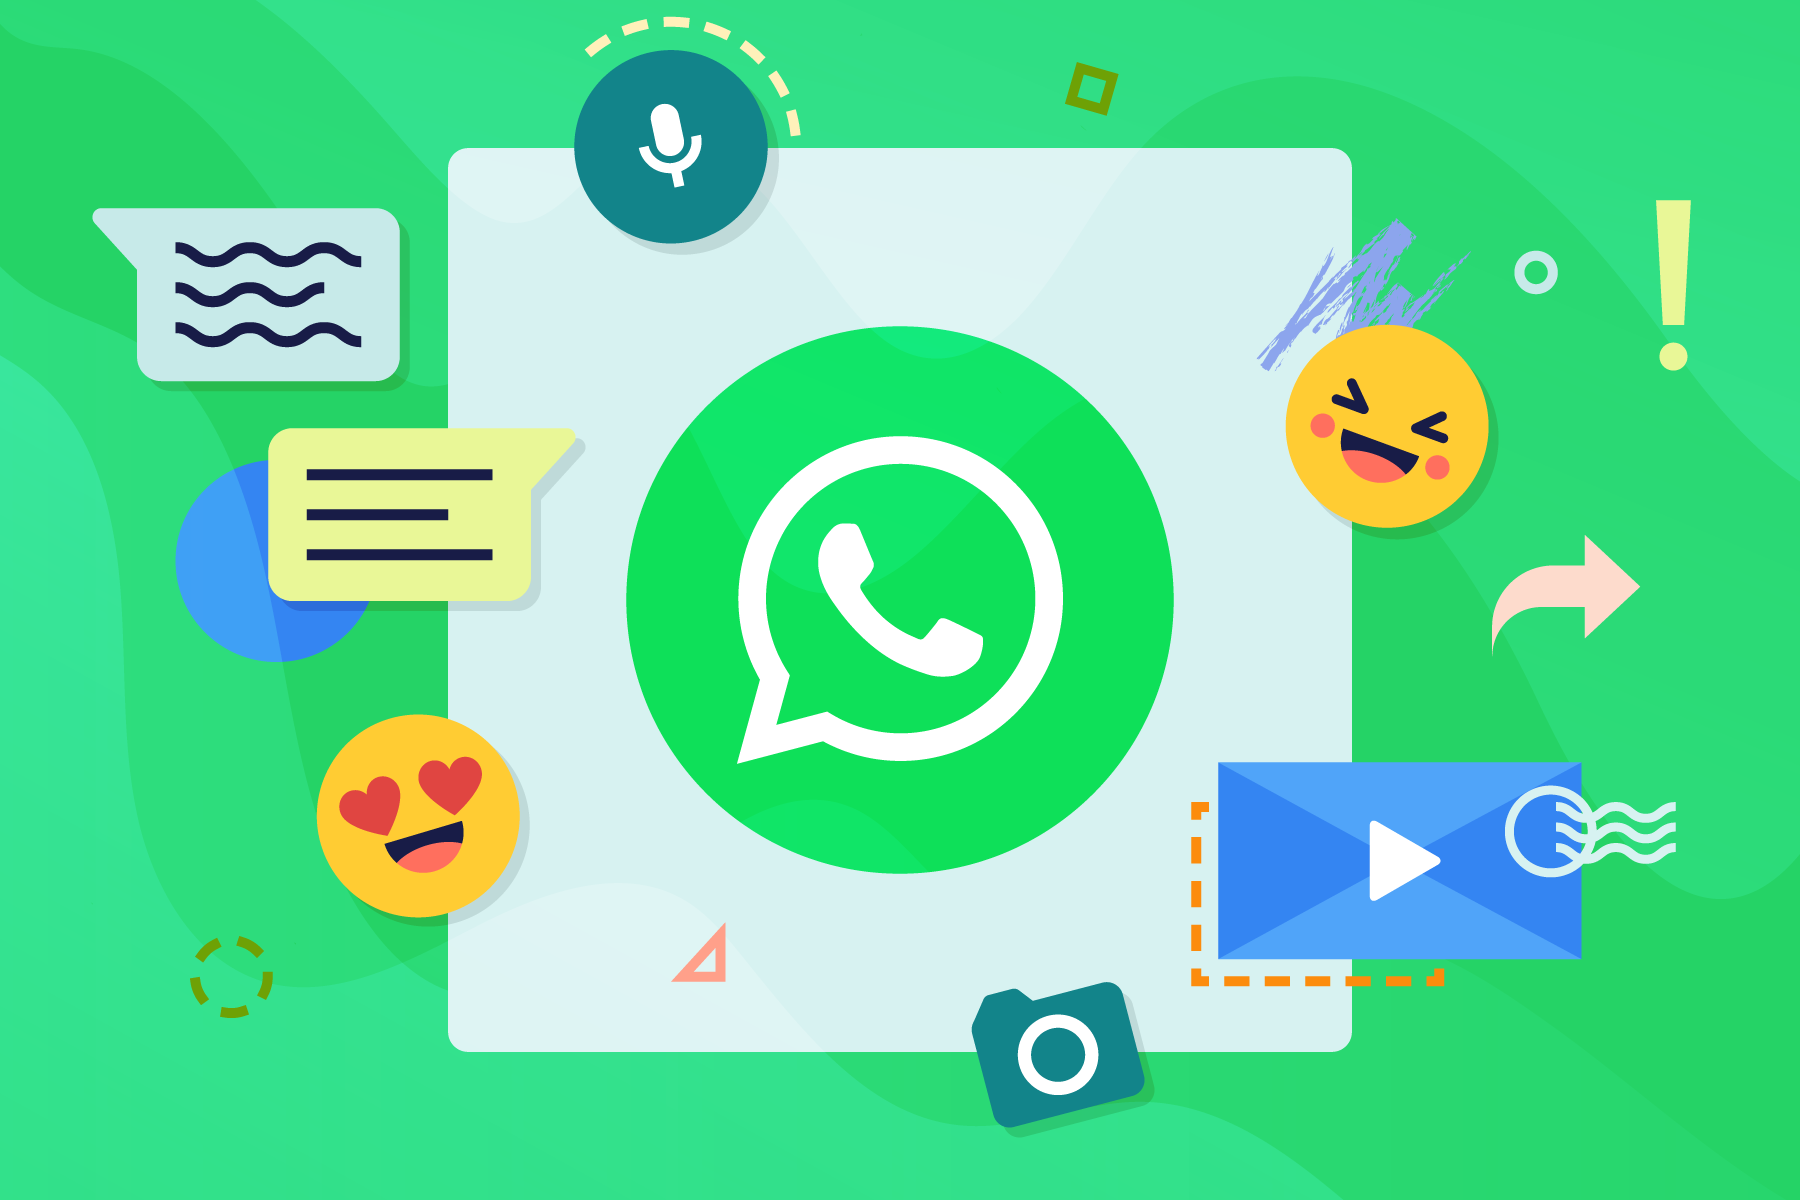 How to Make and Share a WhatsApp Status Video - Animoto